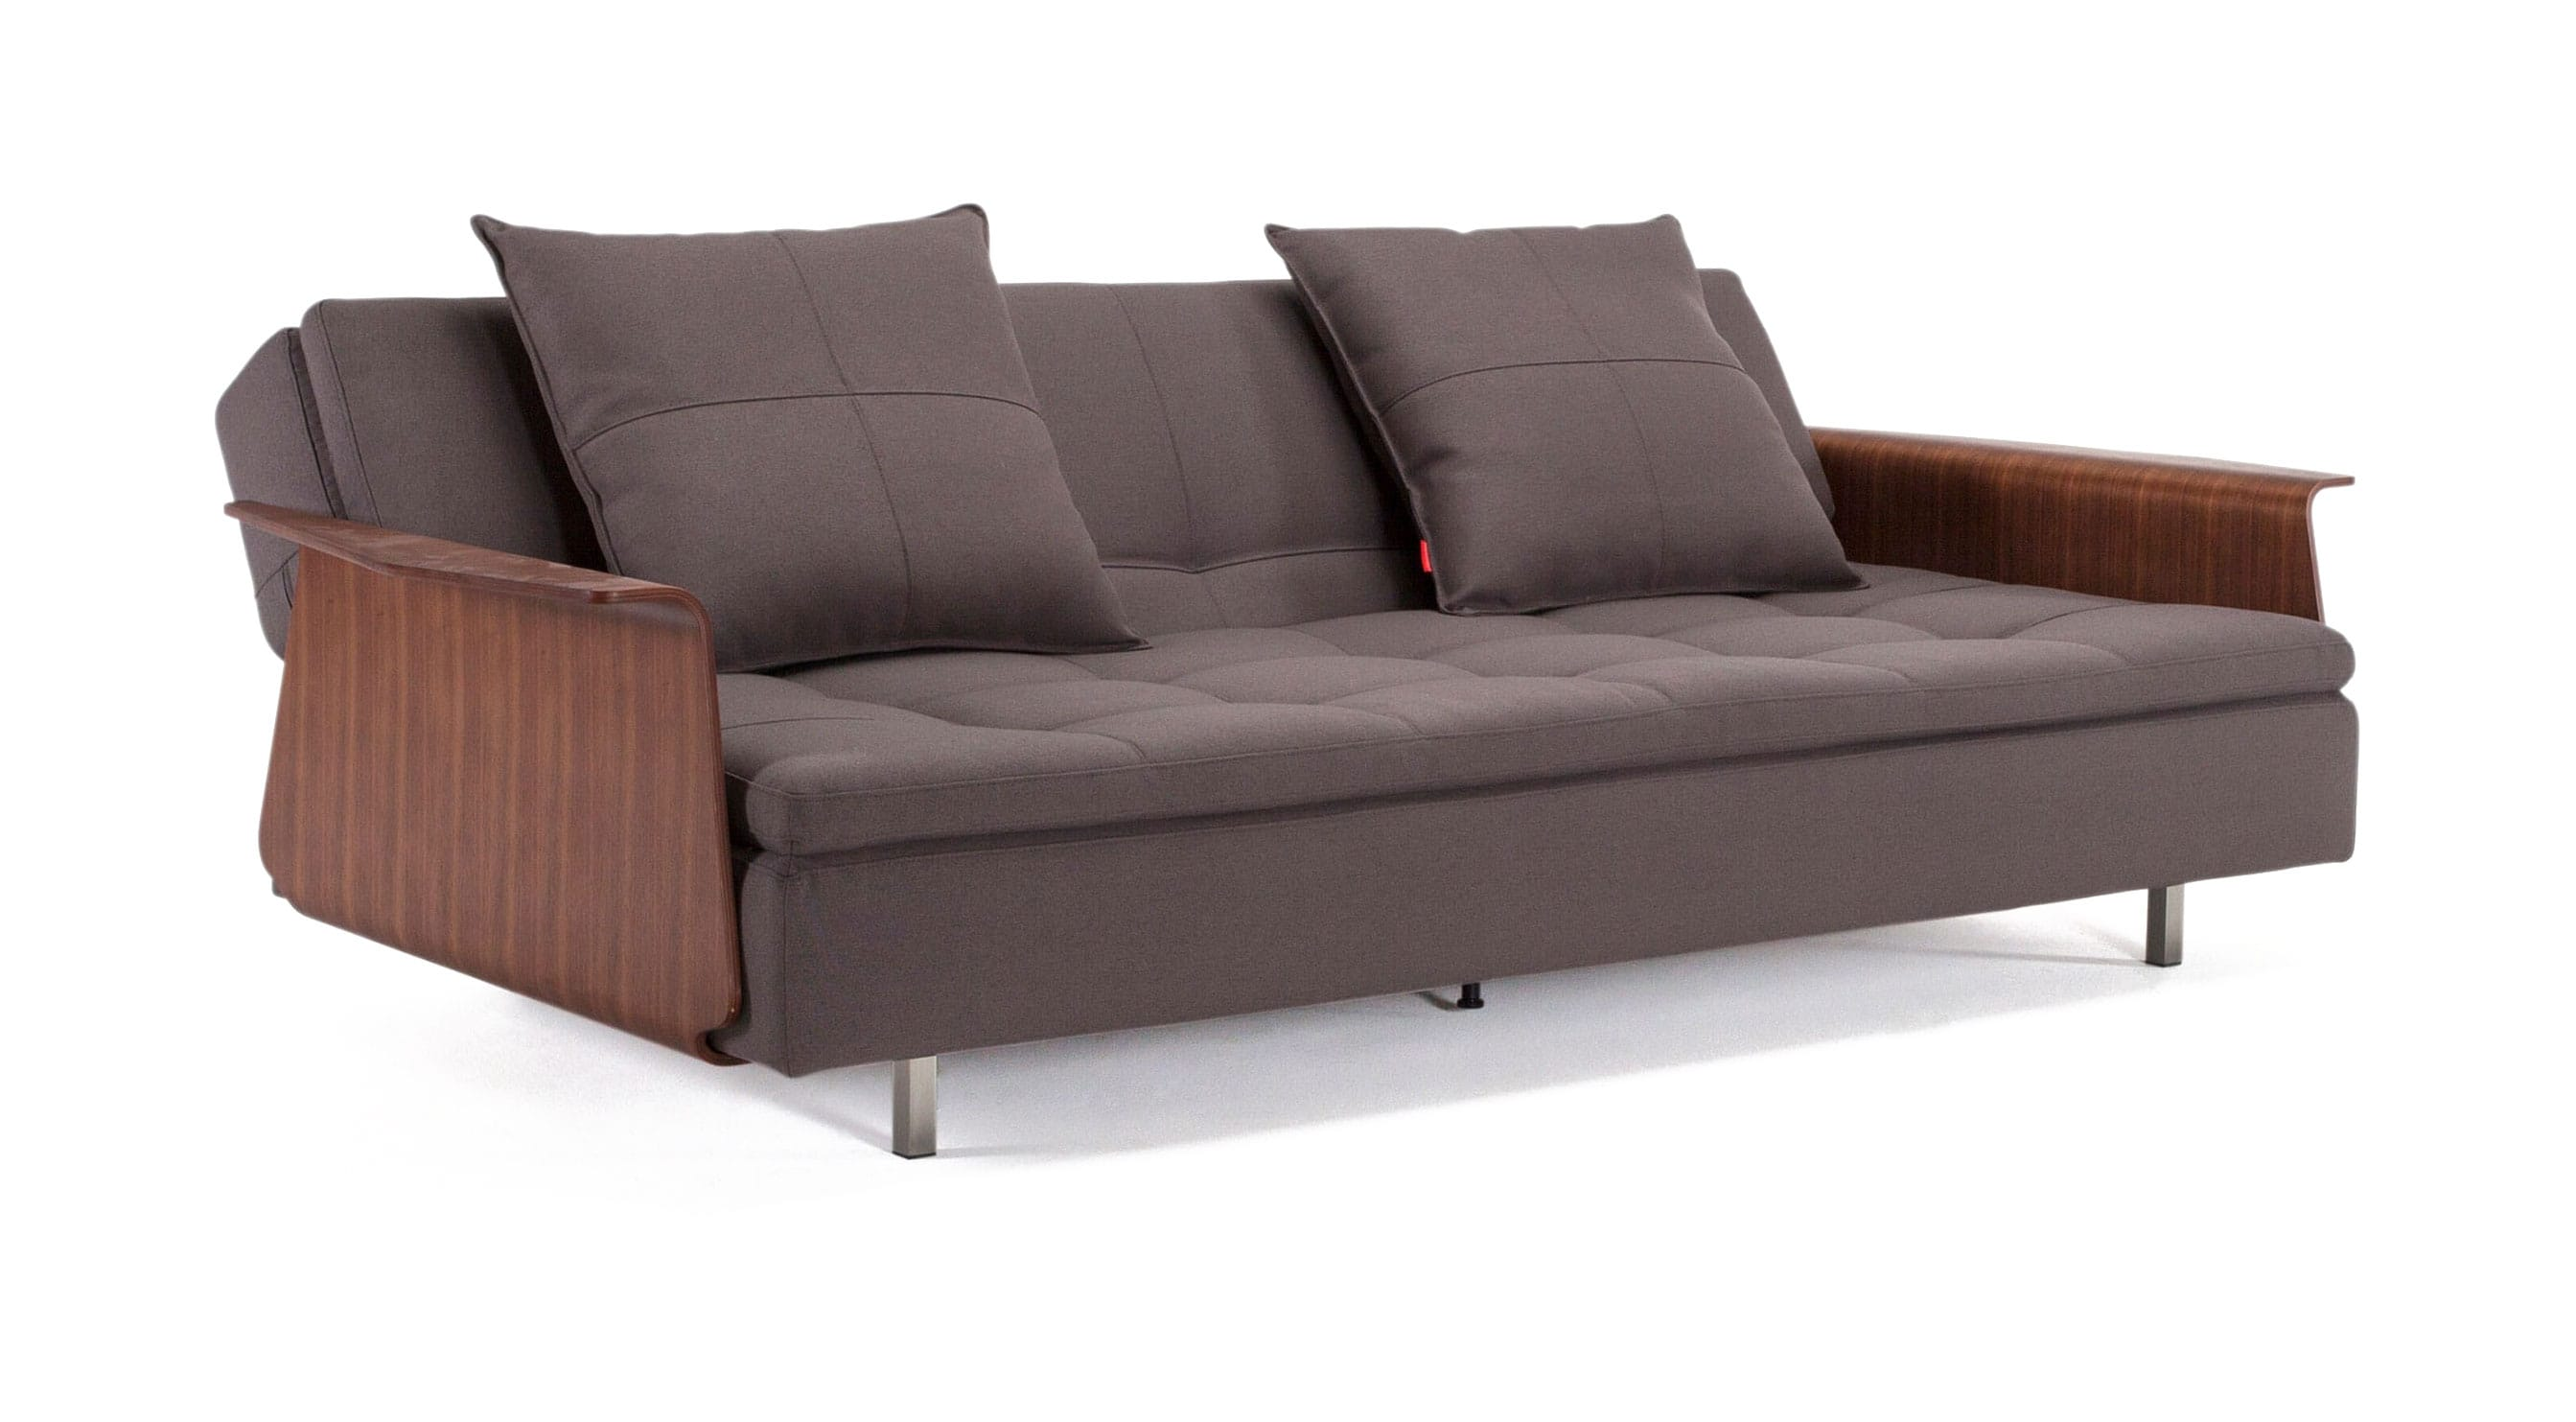 chez long sofa bed stacey leather modular sectional decoration in chaise lounge longue